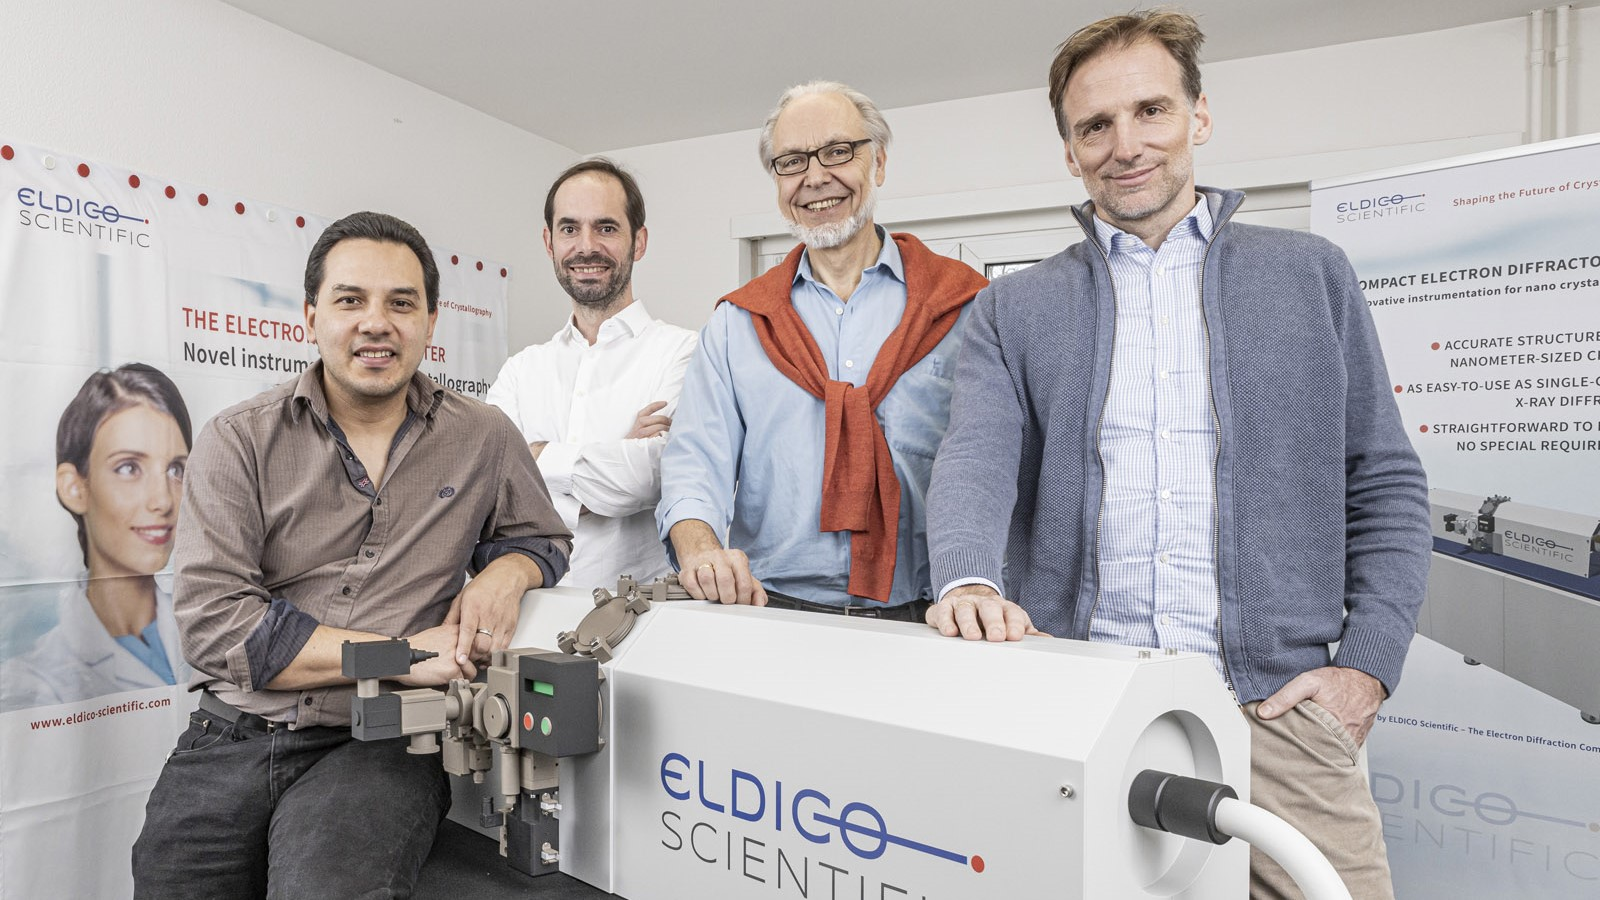 ELDICO-Scientific-team-foto (4)